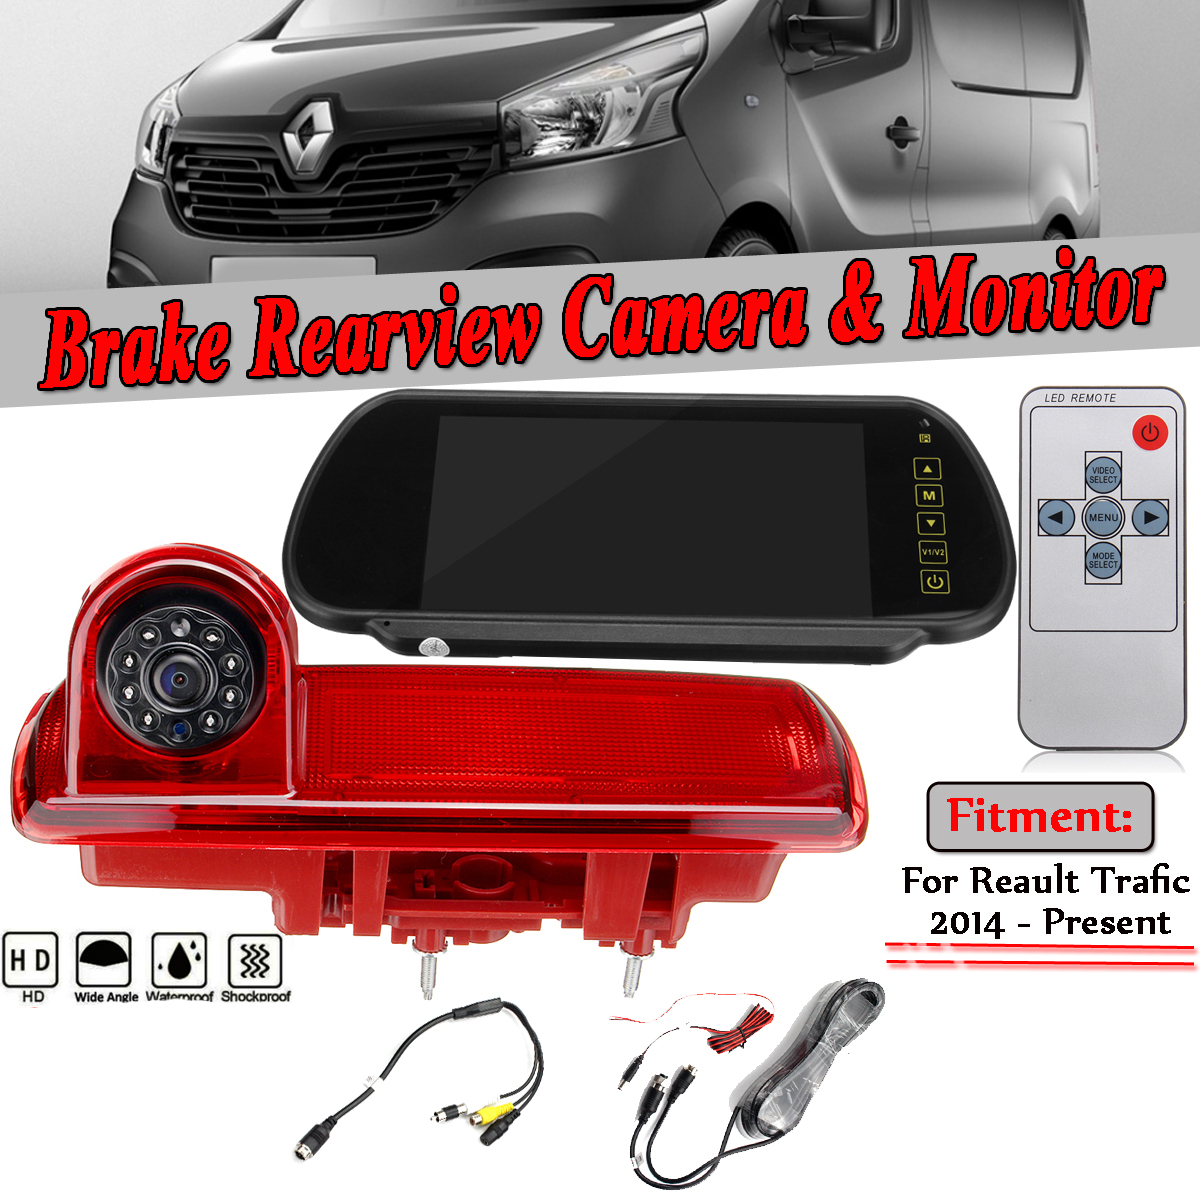 Car Rear View Brake Light Backup Camera For OPEL VAUXHALL VIVARO RENAULT Trafic Auto Parking Backup Camera